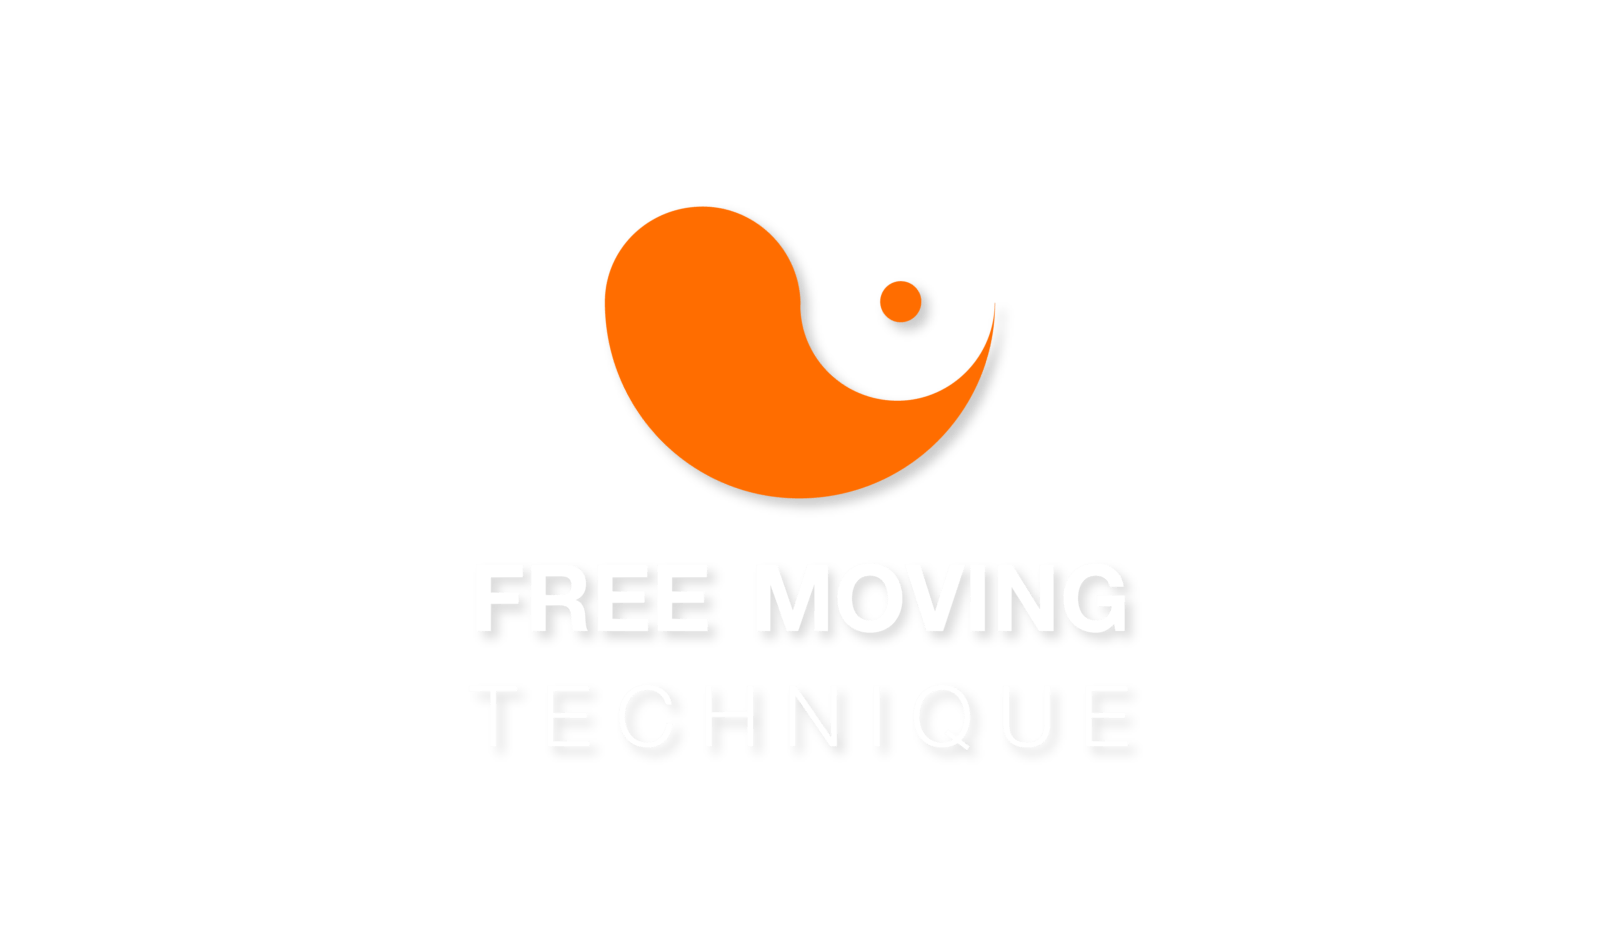 Free Moving Technique - Szabad Mozgás Technika